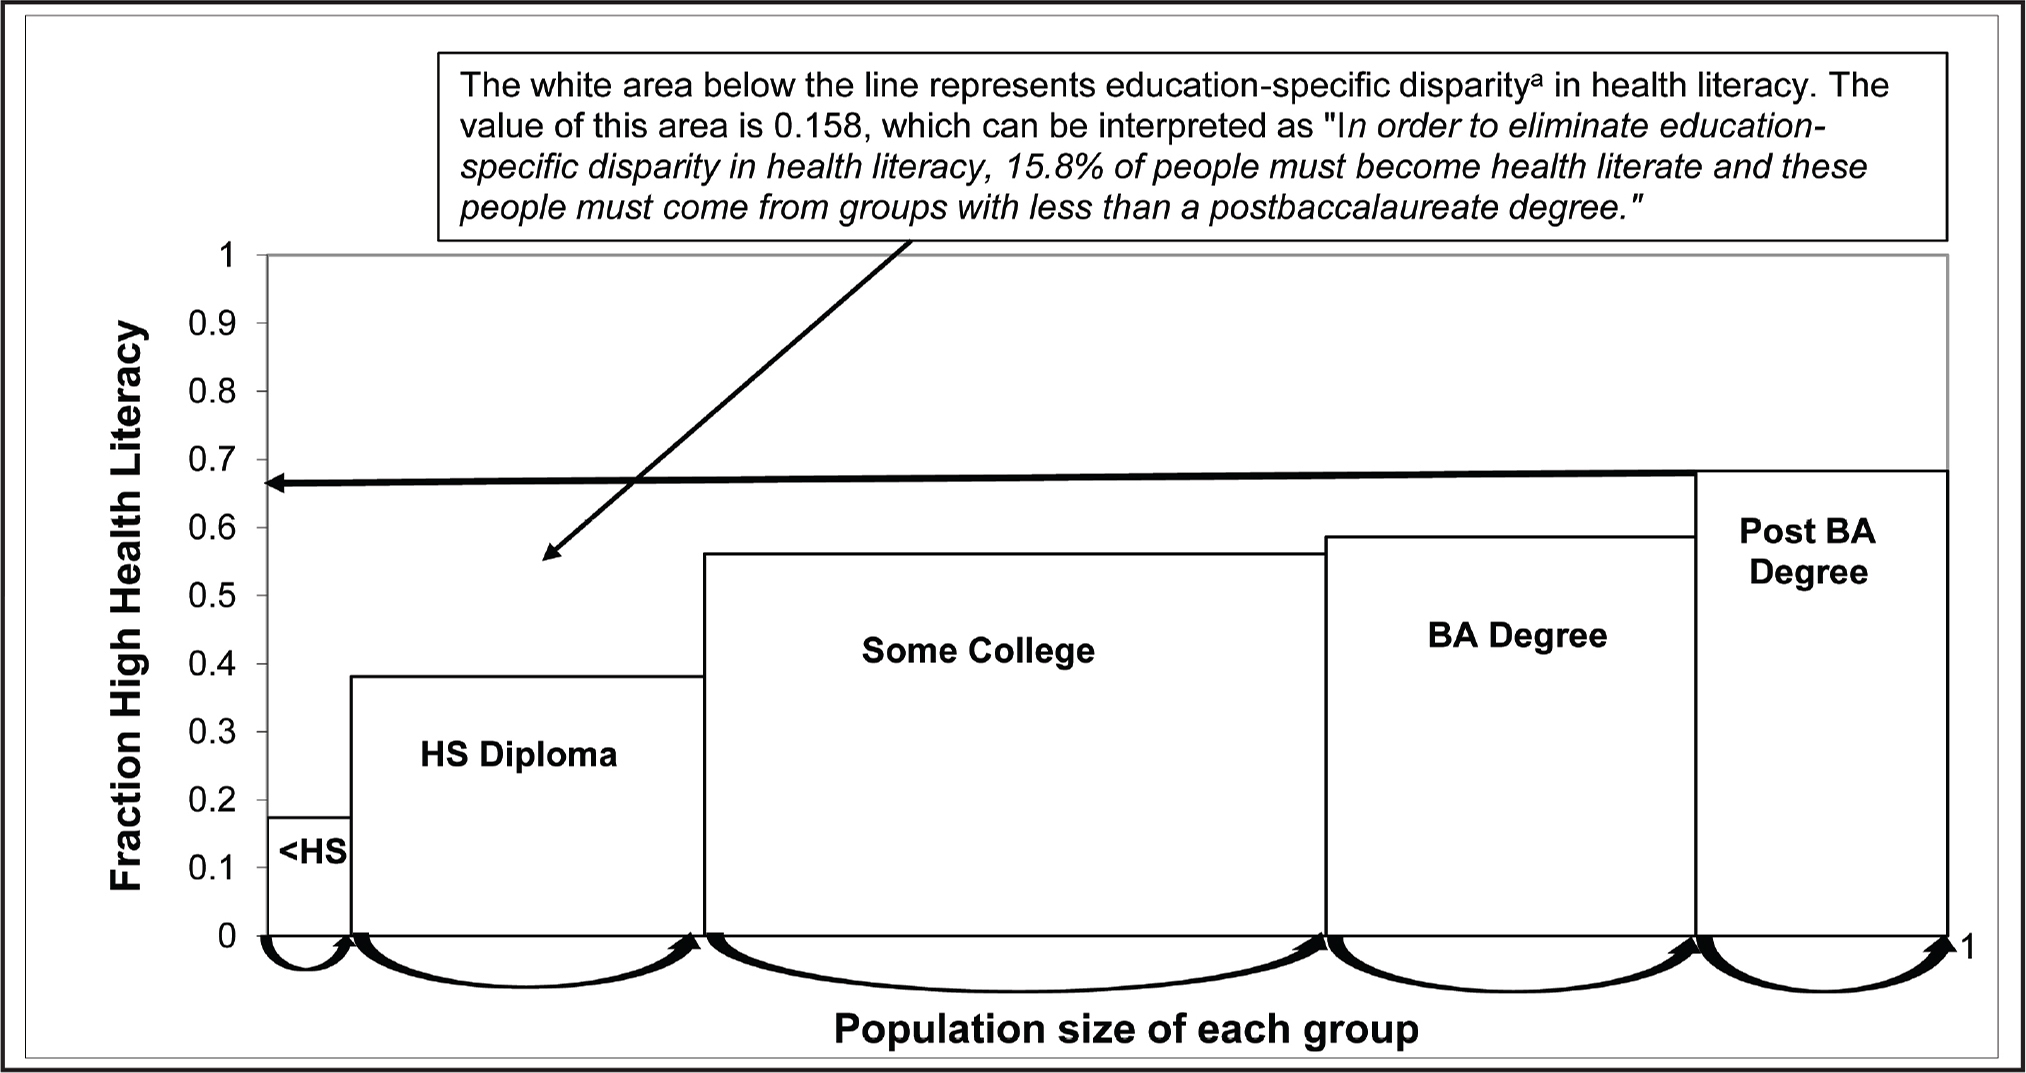 A visual of education specific disparity in health literacy. aEducation-specific disparity (calculation) = ([Reference group fraction with high health literacy {Post BA degree} – Group 1 fraction with high health literacy {<HS}] × Group 1 population share) + ([Reference group fraction with high health literacy {Post BA degree} – Group 2 fraction with high health literacy {HS diploma}] × Group 2 population share) + ([Reference group fraction with high health literacy {Post BA degree} – Group 2 fraction with high health literacy {Some college}] × Group 3 population share) + ([Reference group fraction with high health literacy {Post BA degree} – Group 4 fraction with high health literacy {BA degree}] × Group 4 population share). Education-specific disparity in health literacy = ([.683 − .174] × .058) + ([.683 − .381] × .204) + ([.683 − .561] × .369) + ([.683 − .586] × .228) = .158. HS = high school; BA = baccalaureate.